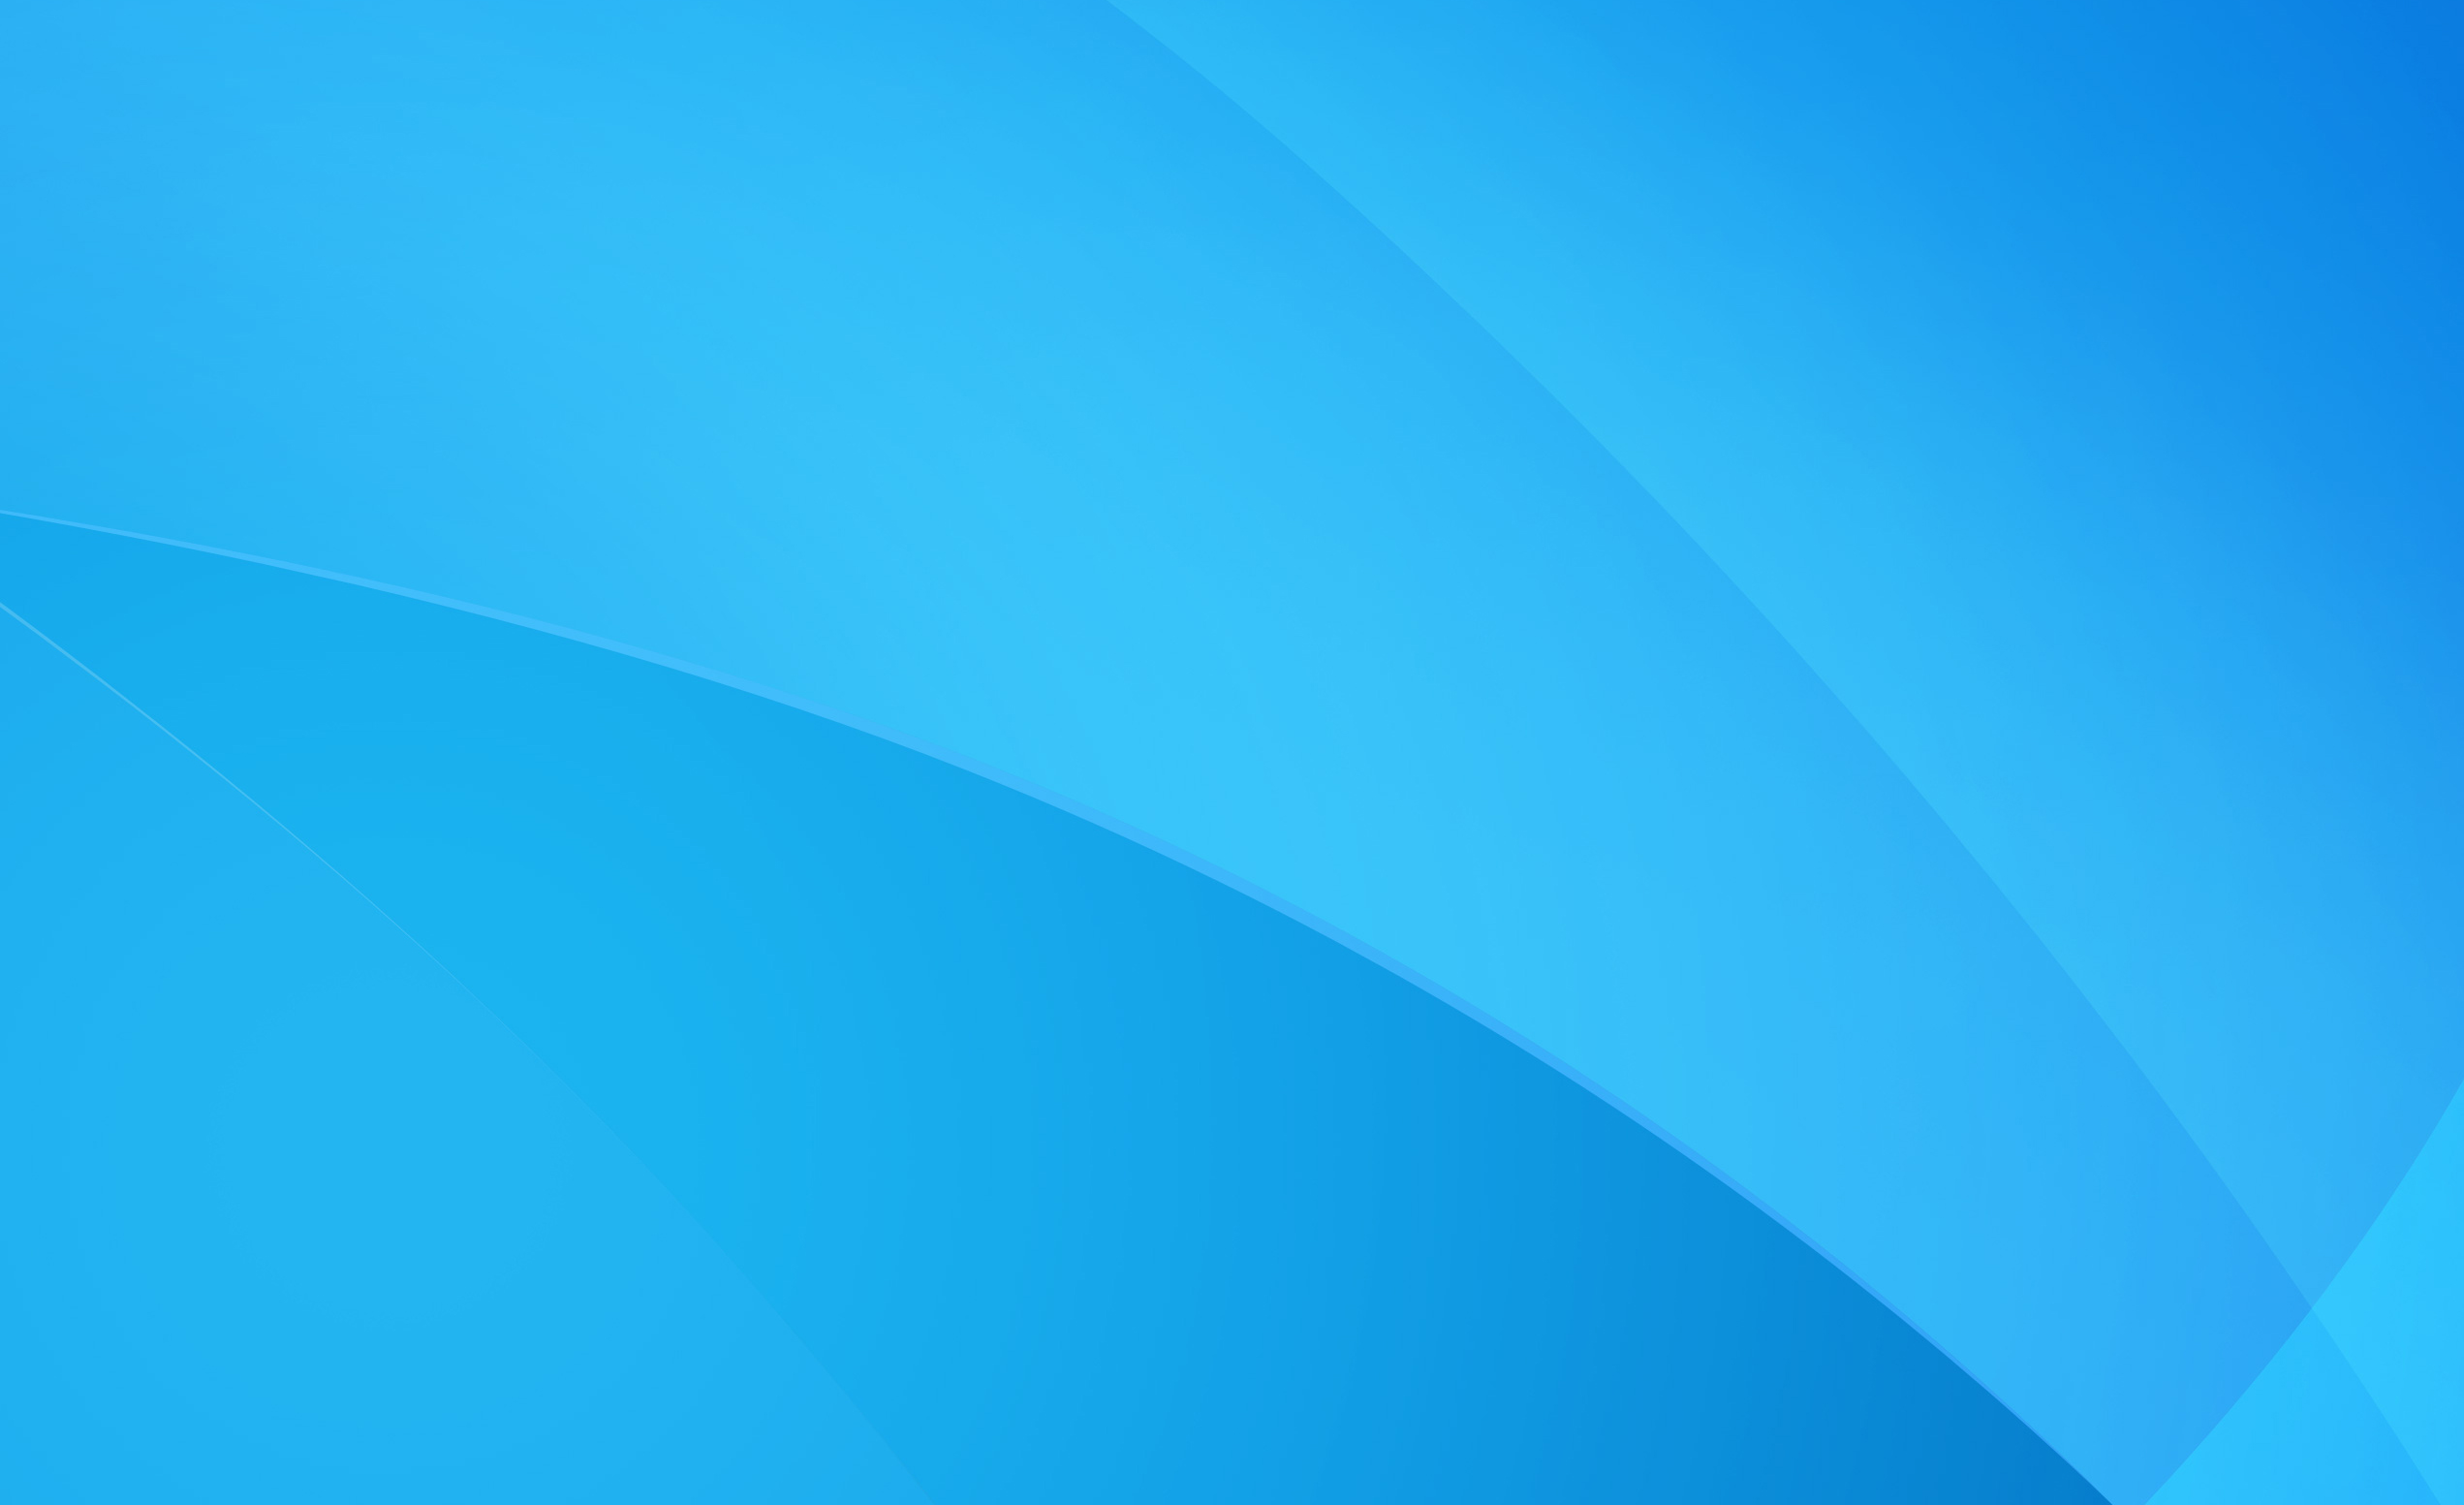 blue abstract background jpg